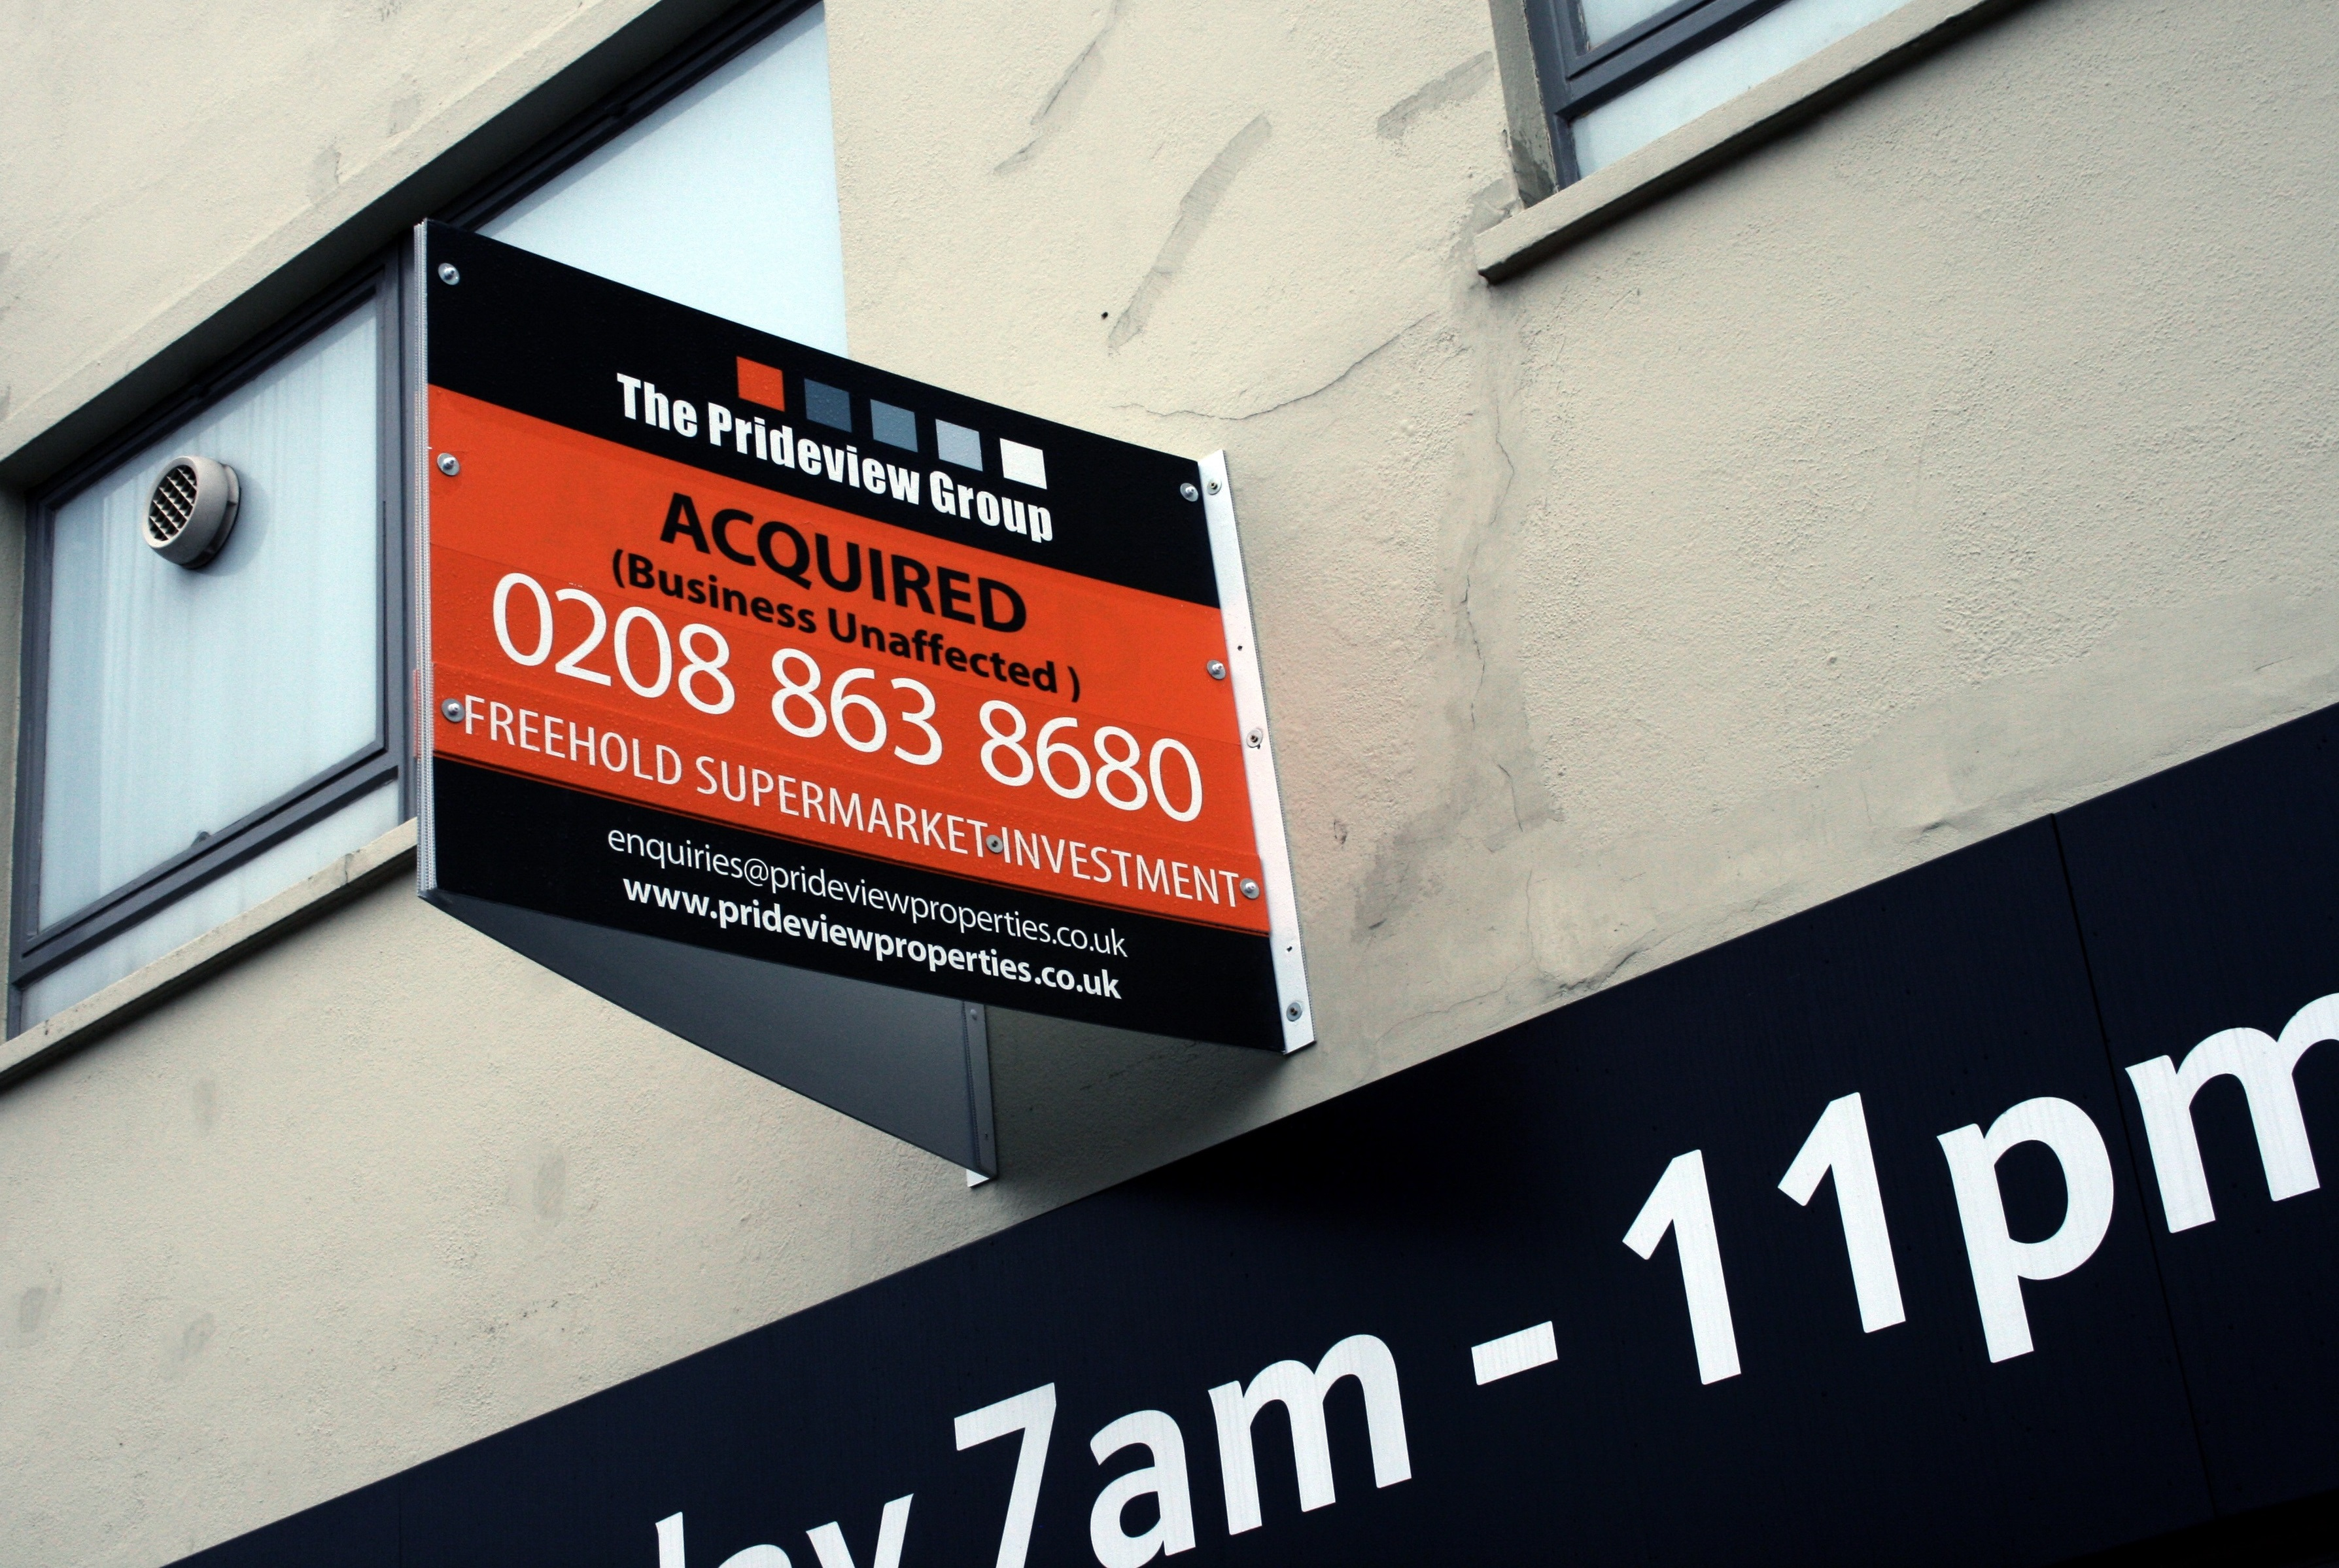 the prideview group provides lettings for all of our services